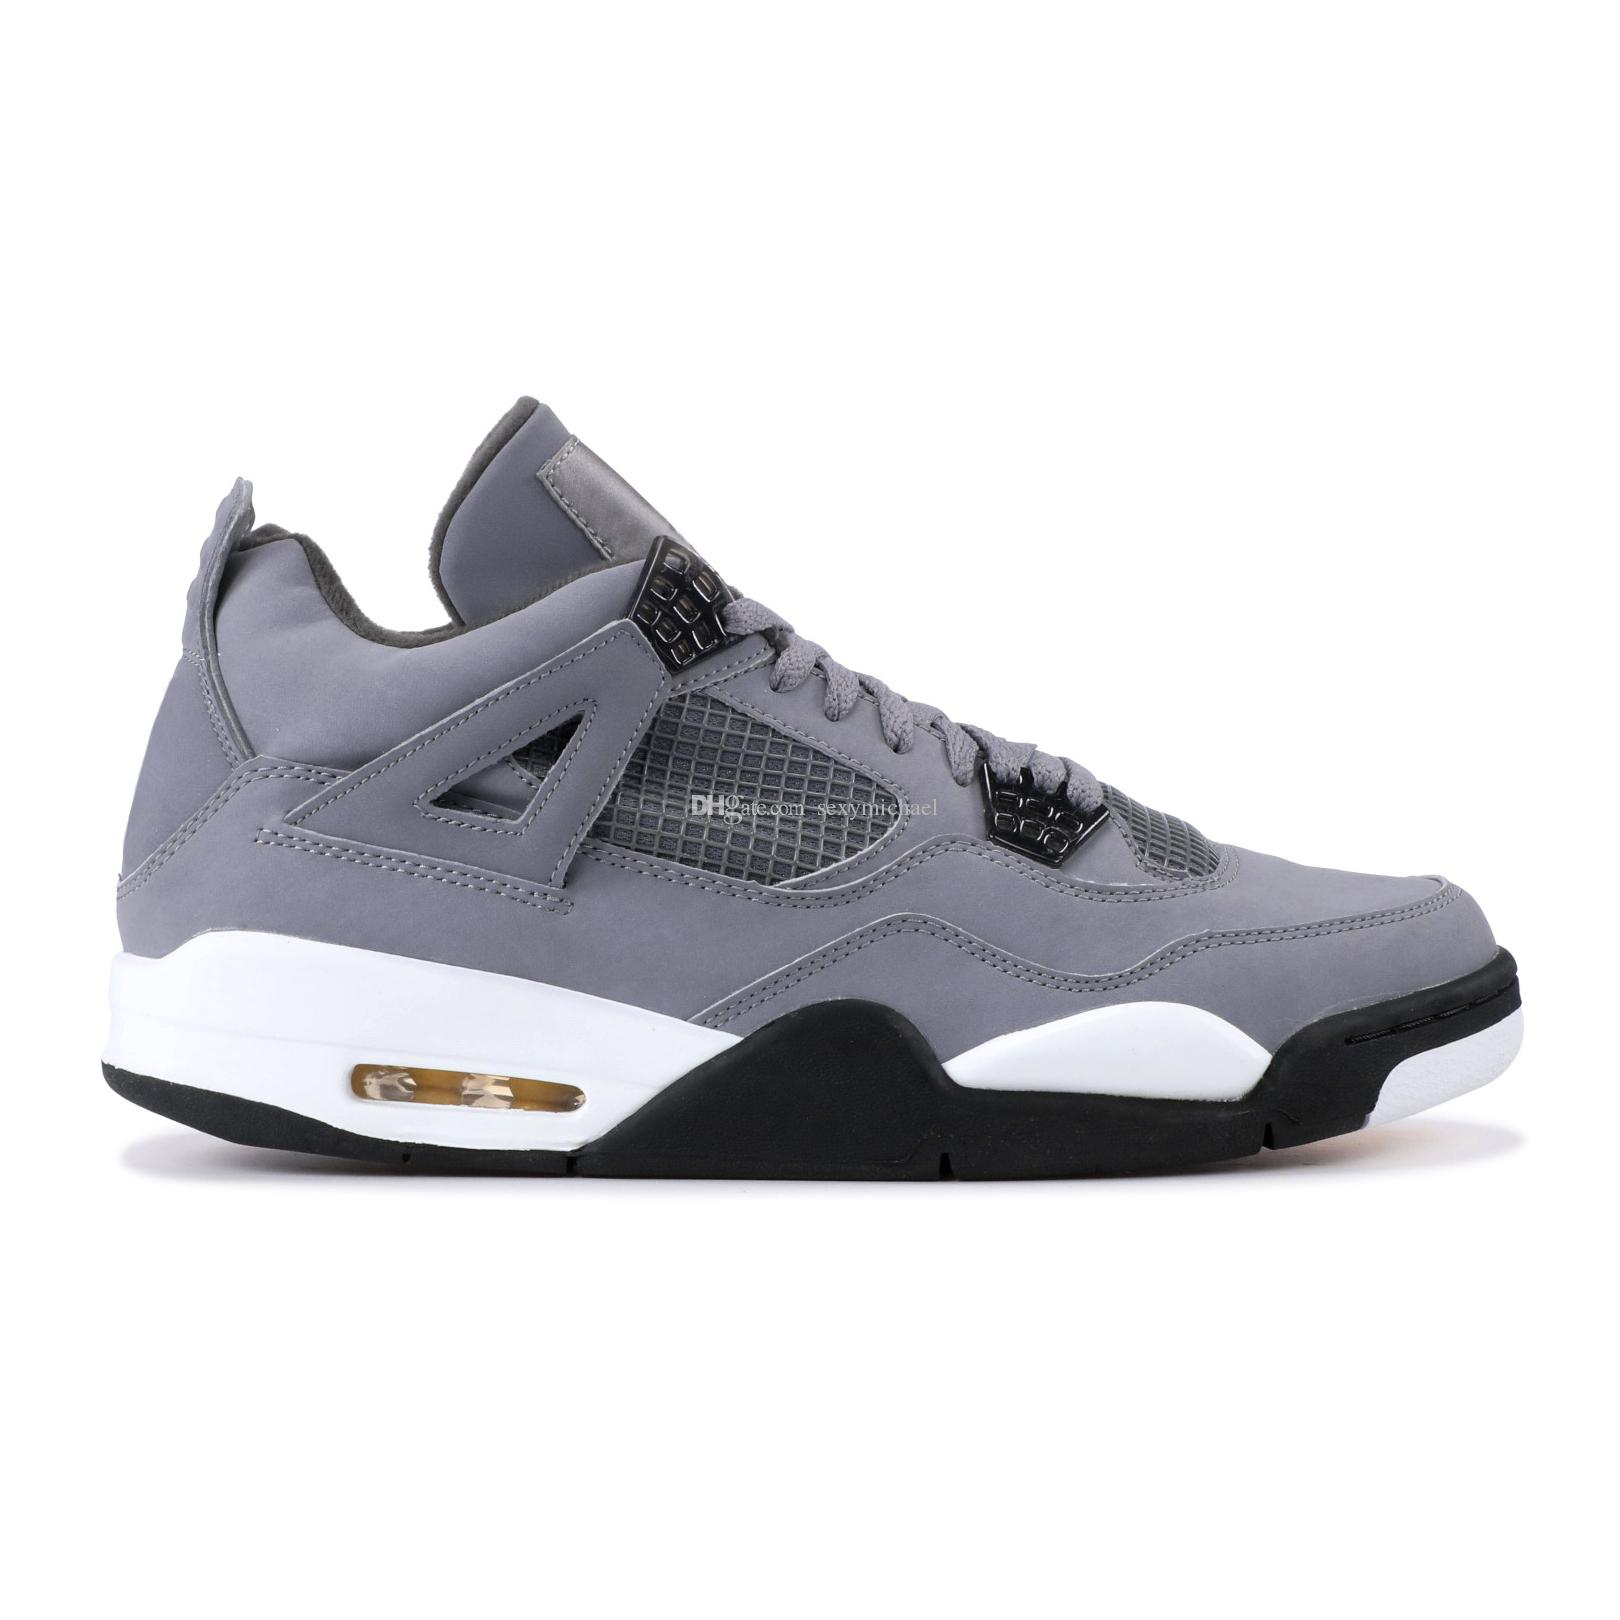 4 Cool Grey 4s Basketball Shoes Gray